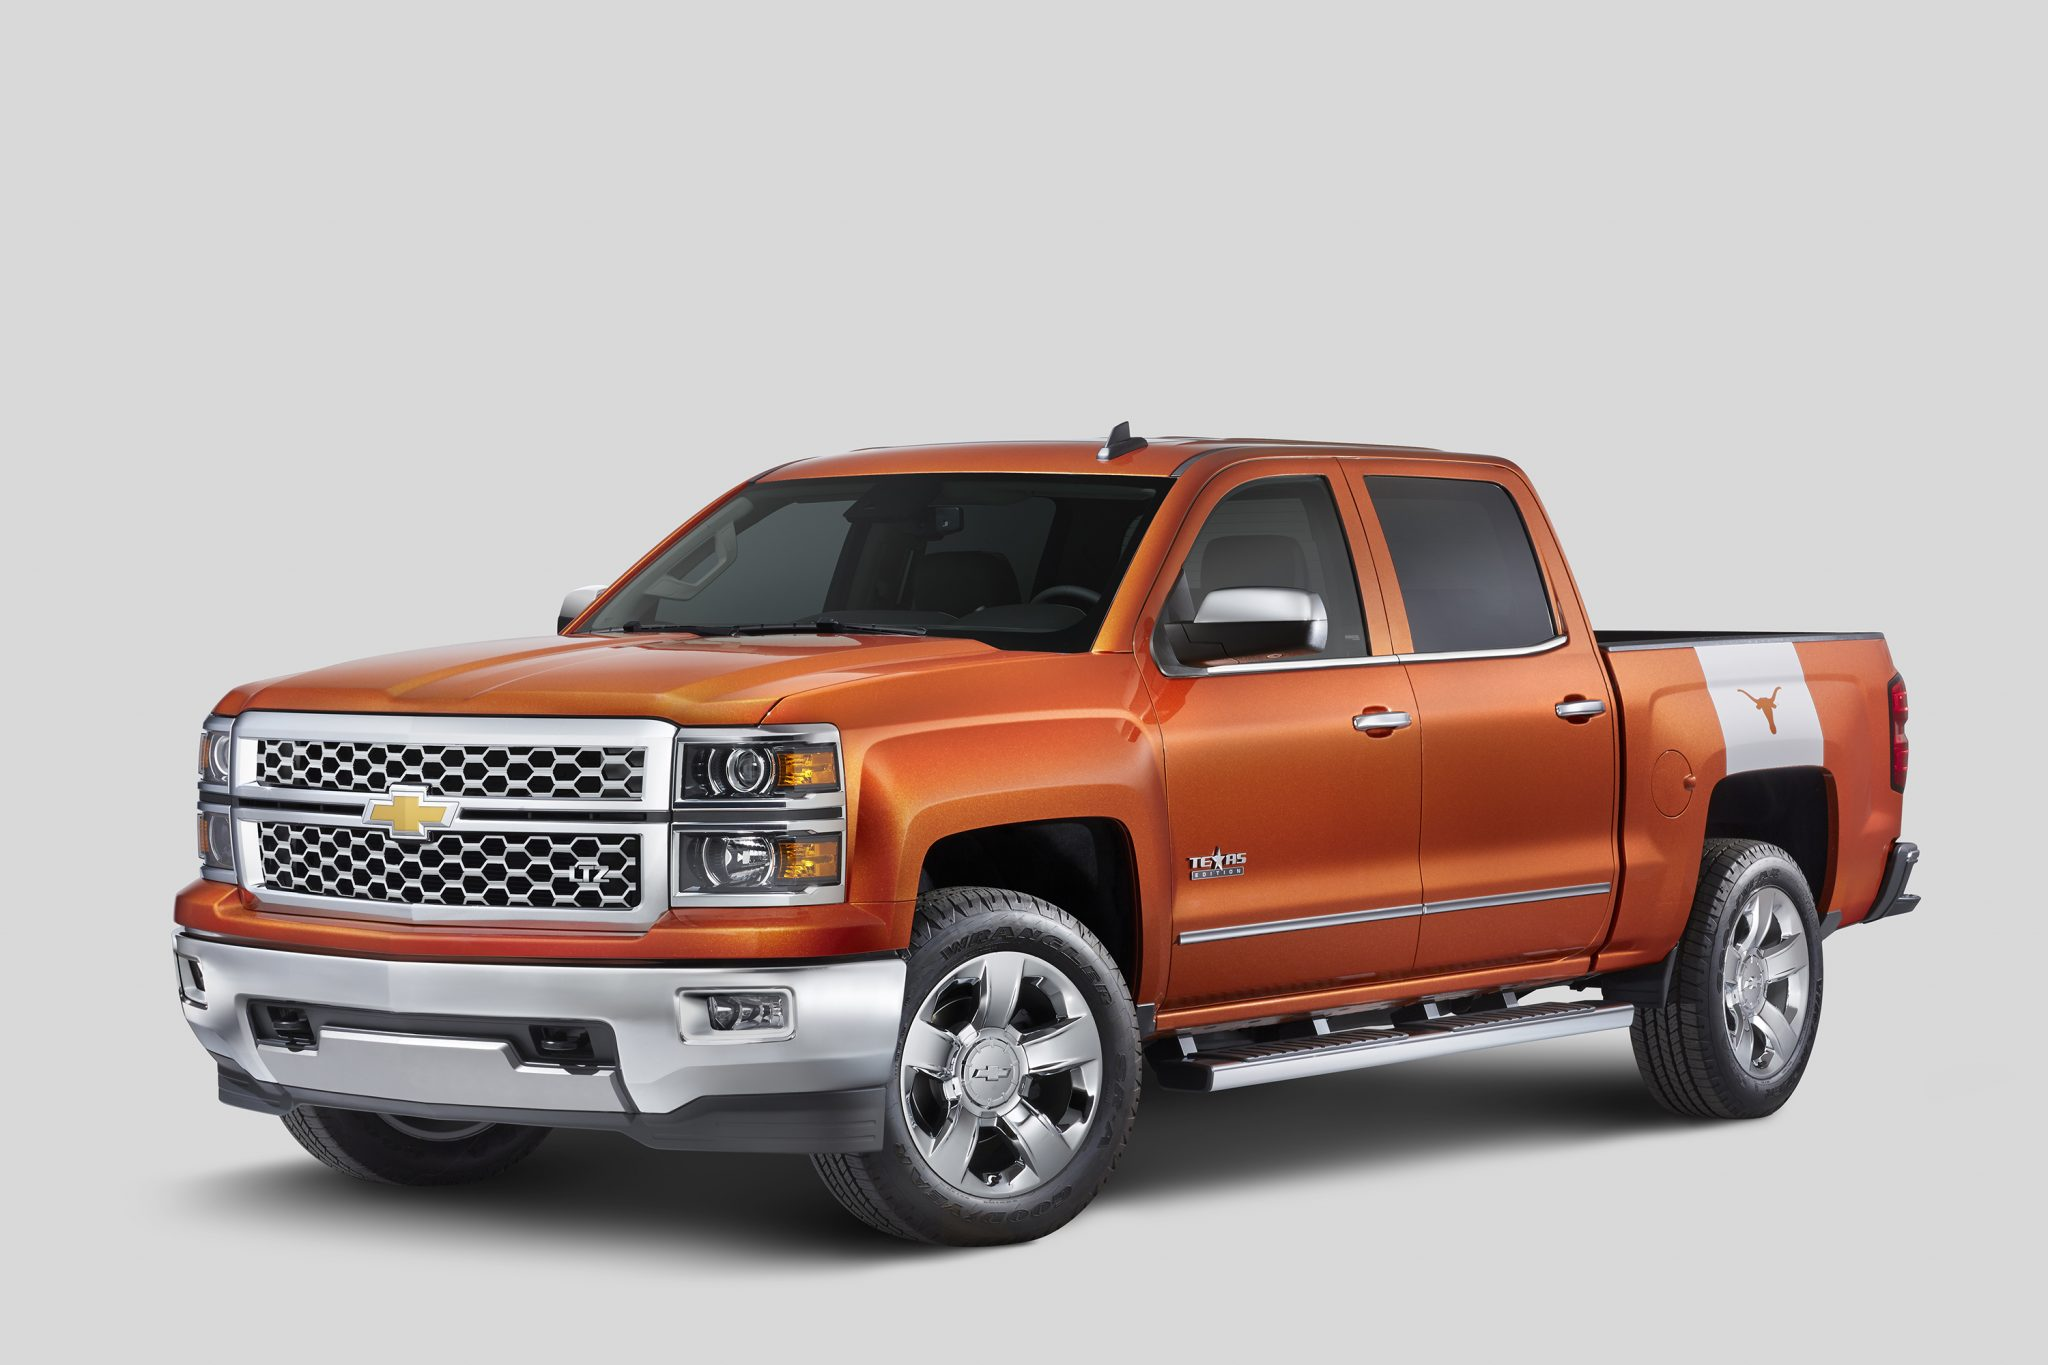 chevy reveals 2015 silverado university of texas edition the news wheel. Black Bedroom Furniture Sets. Home Design Ideas